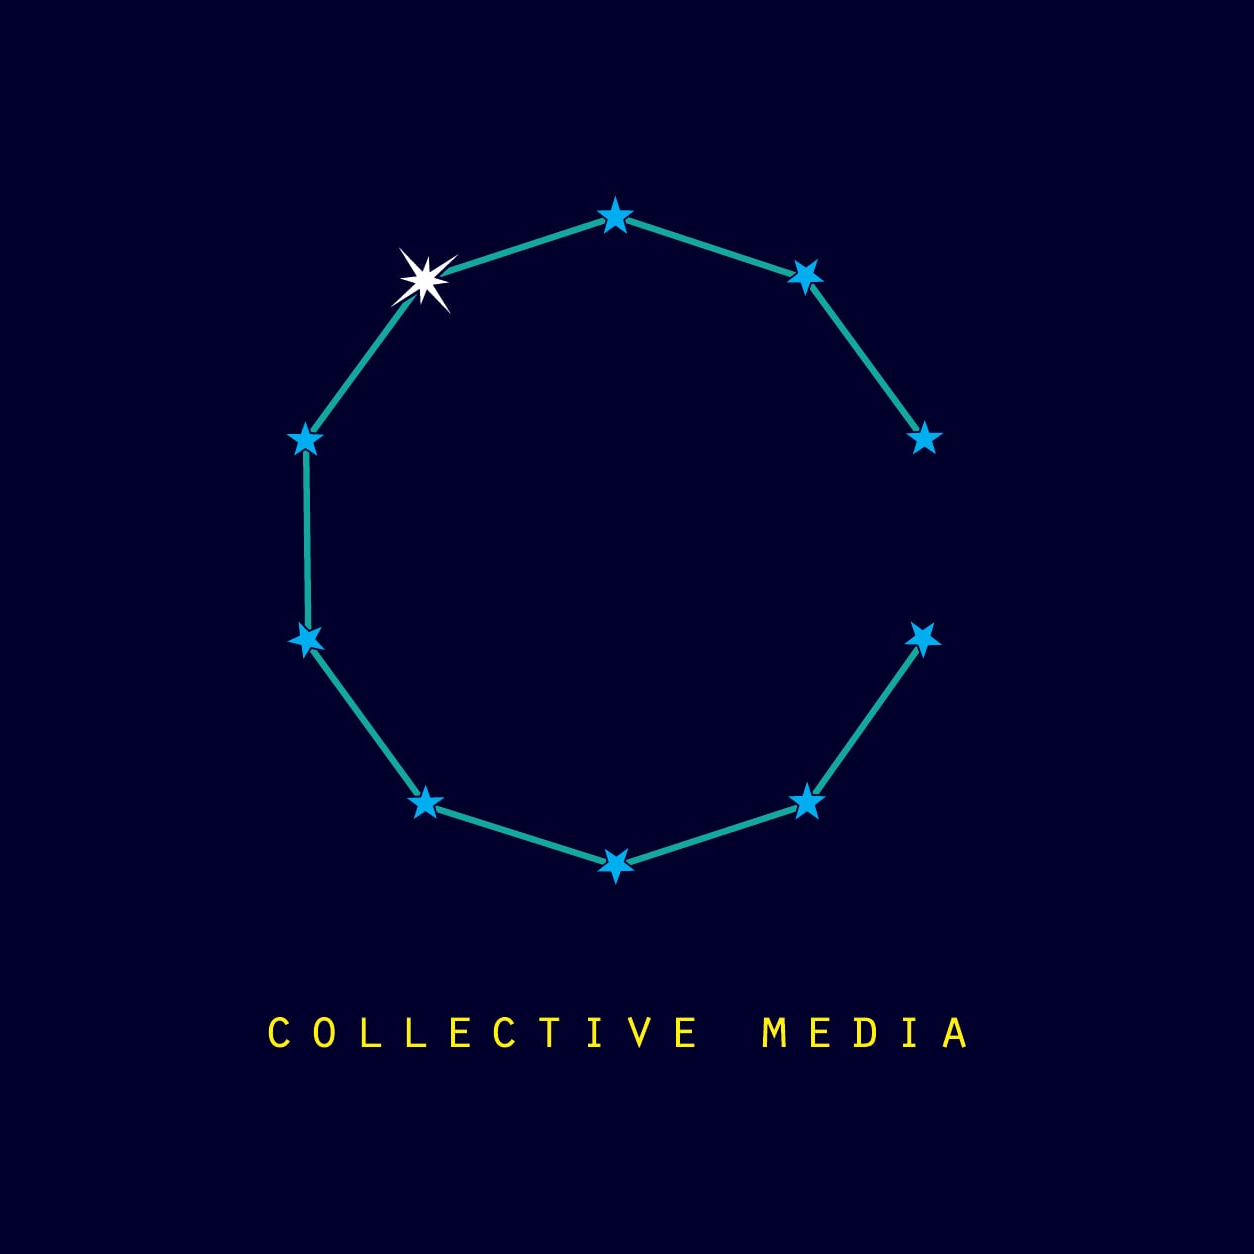 Collective-Media_Brand-Identity_Master Logo .jpg